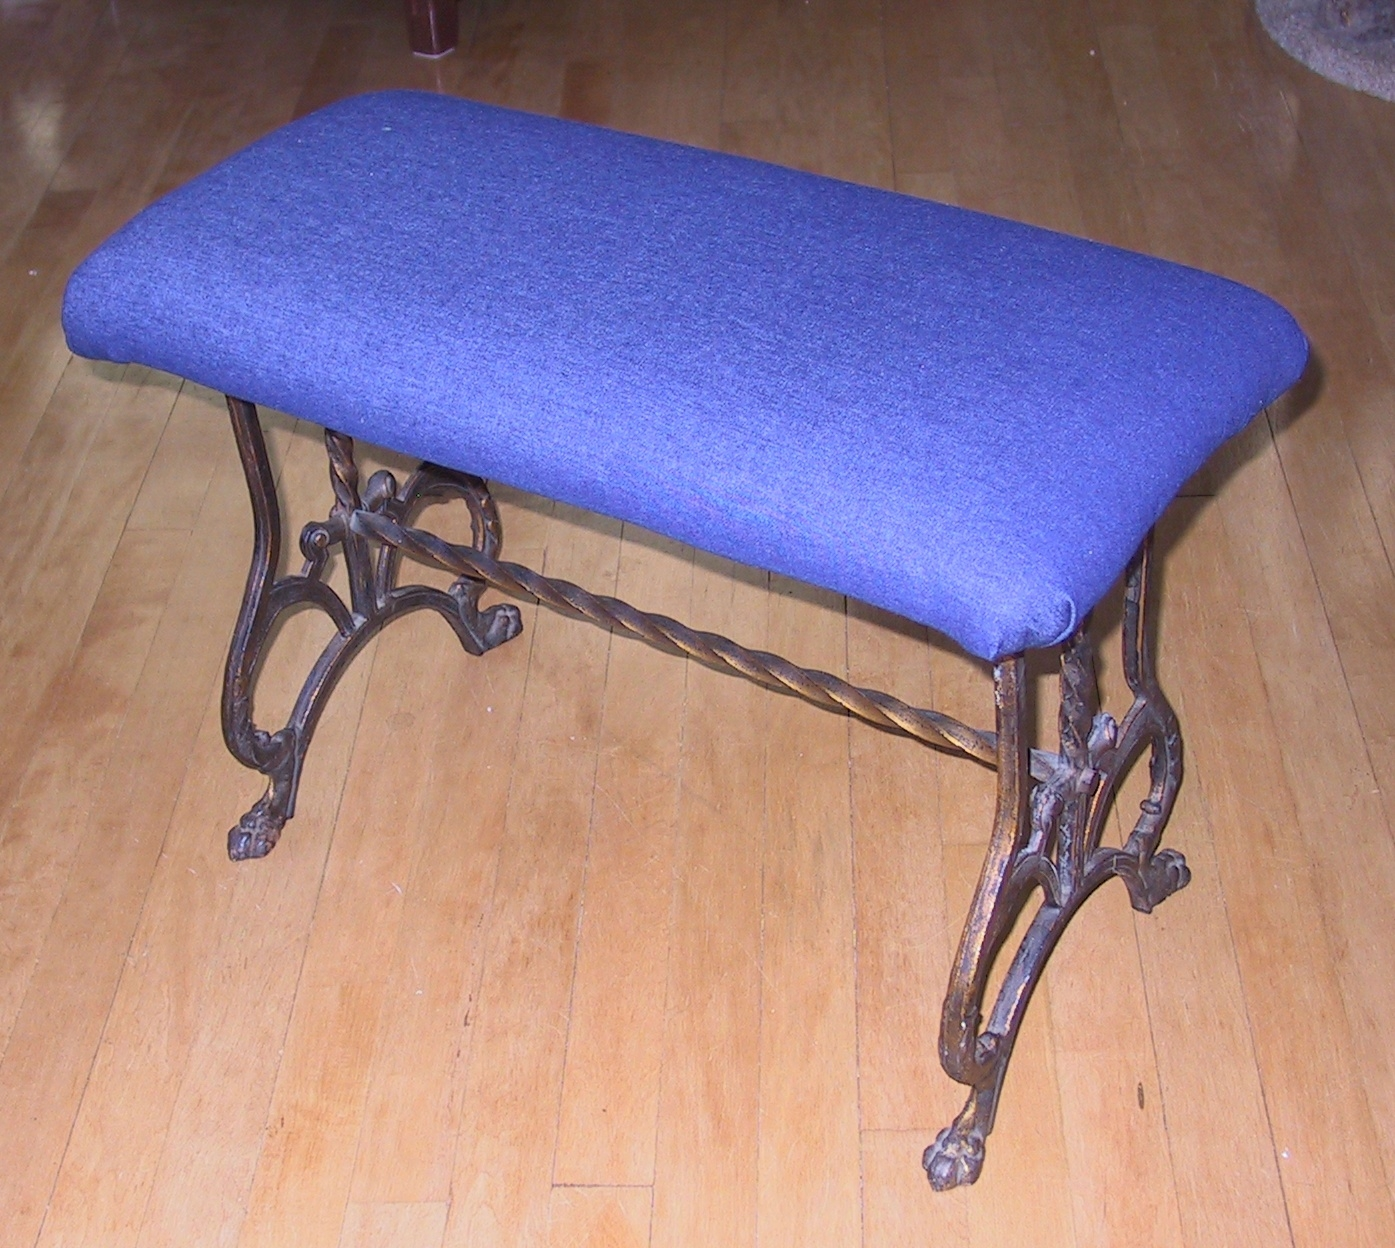 The bench was useful, and now beautiful, with a fun, denim cover